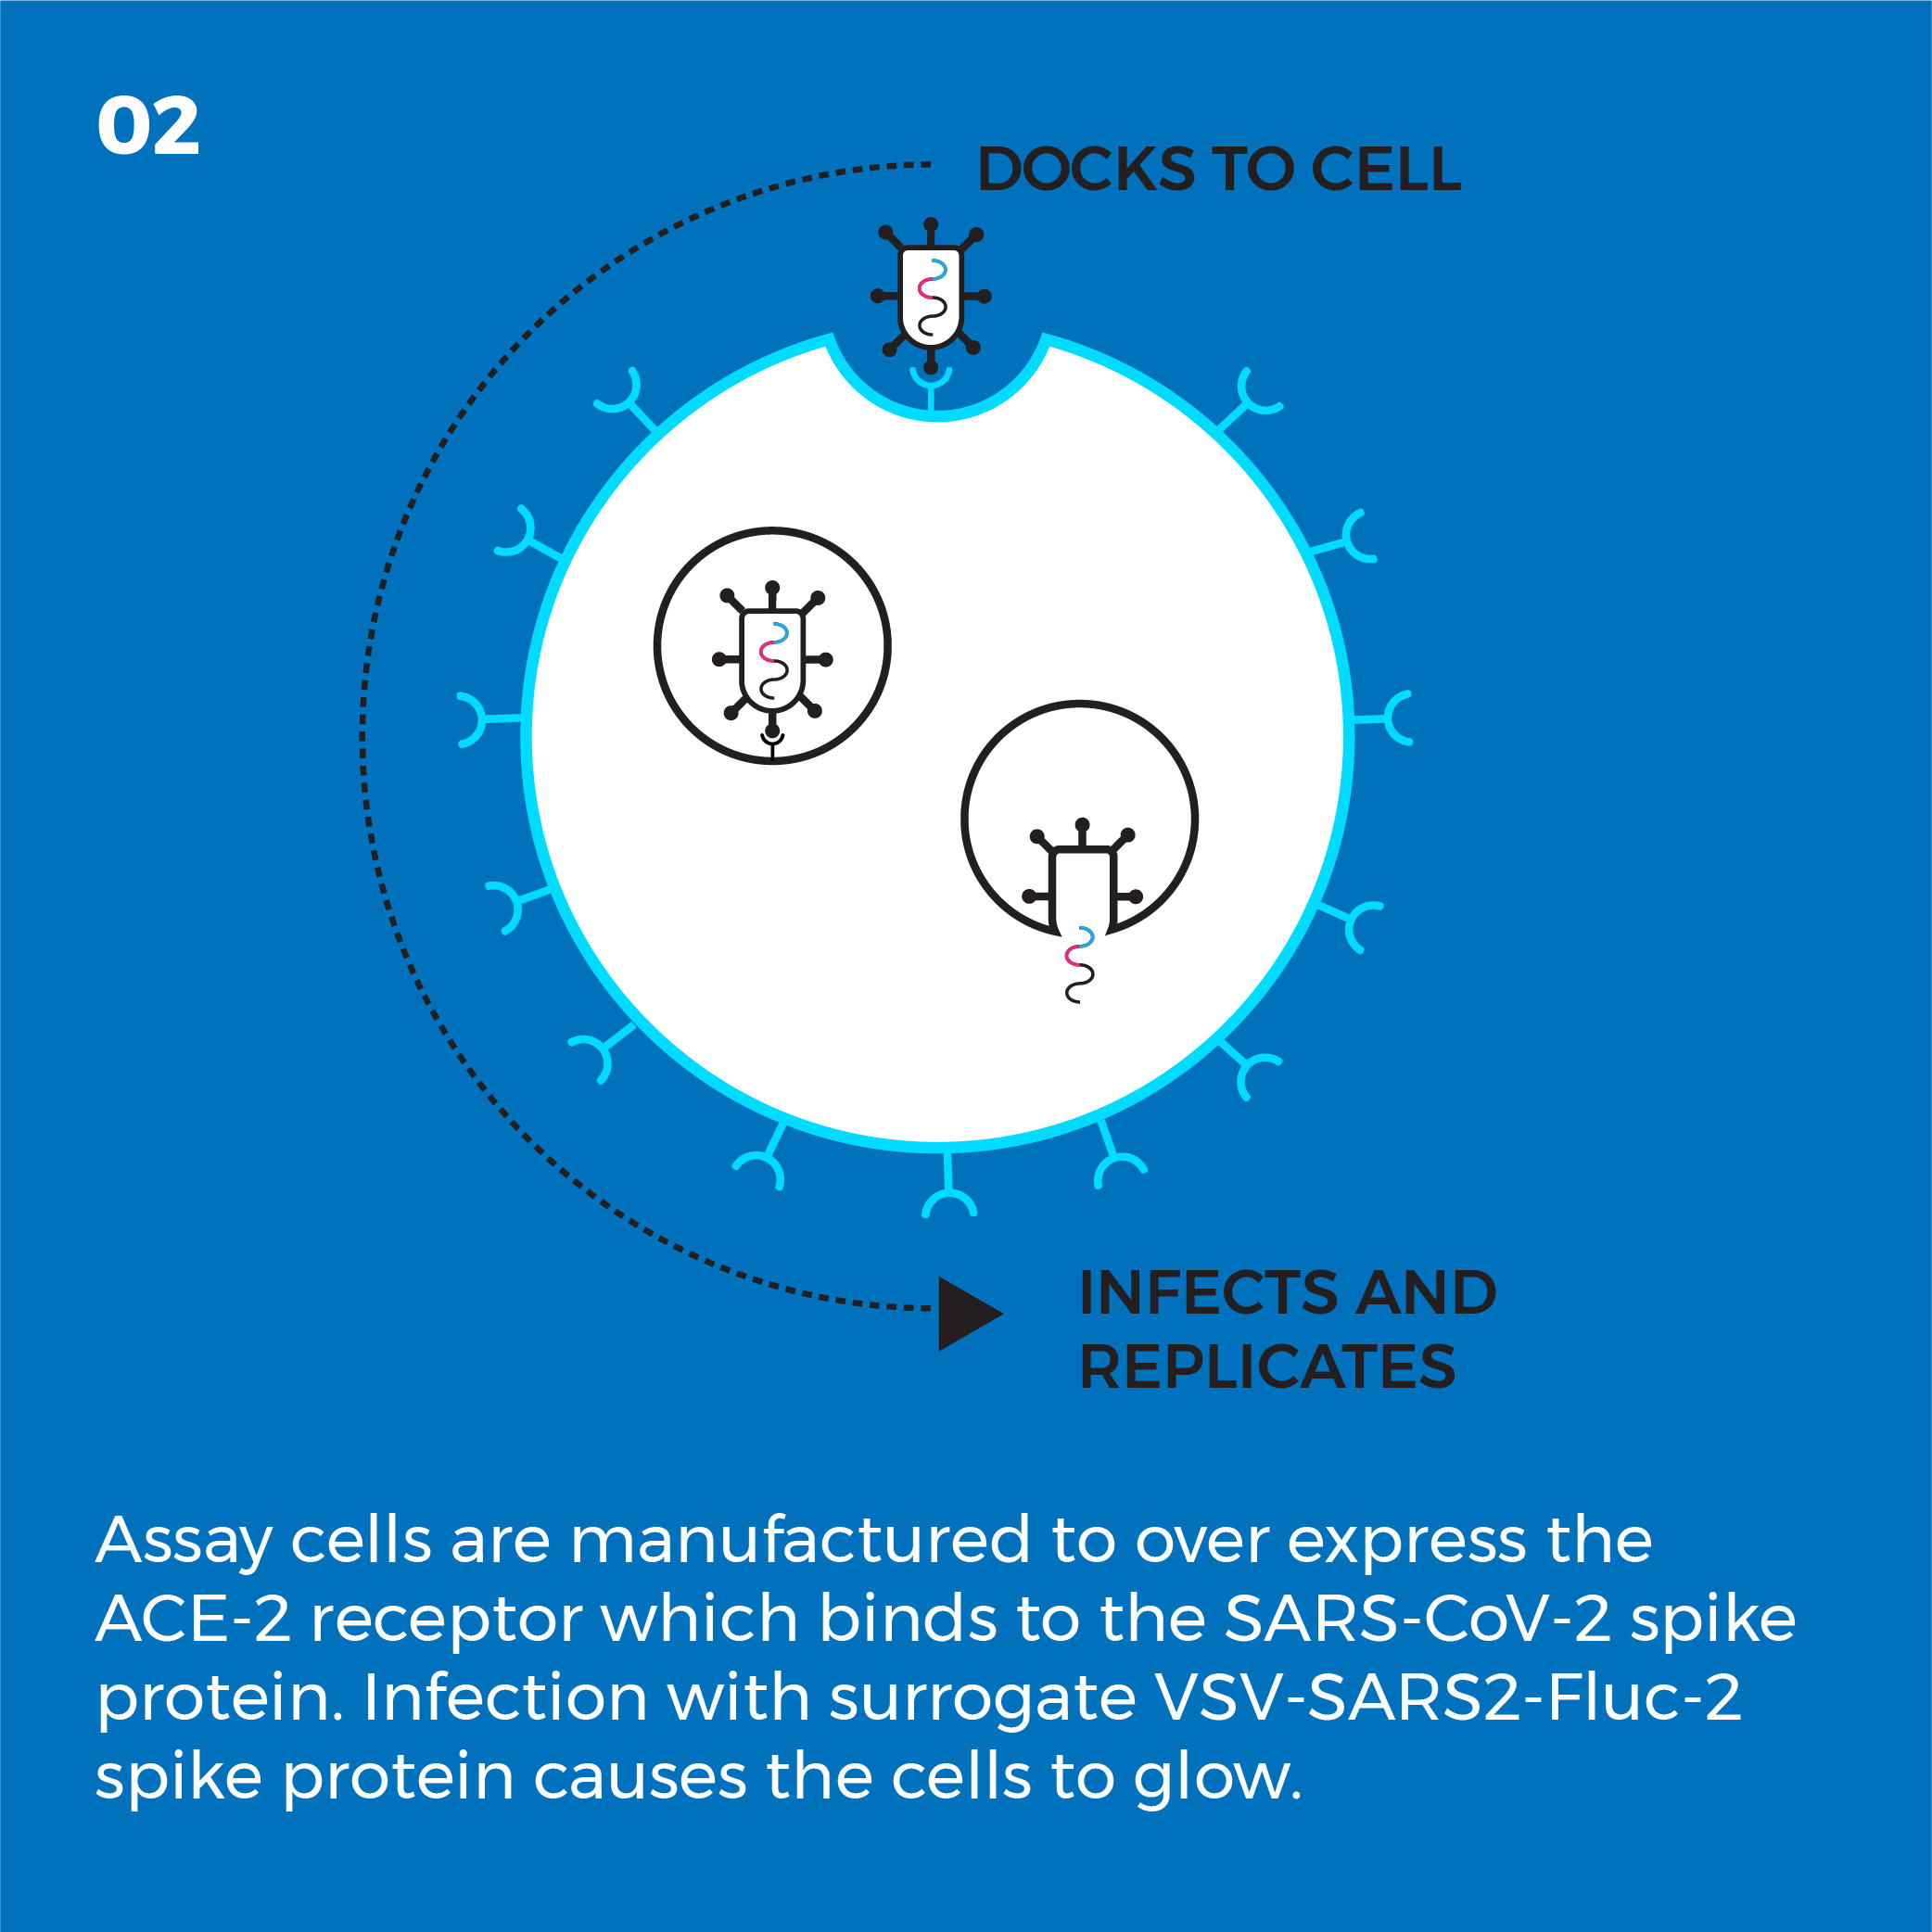 Assay cells are manufactured to over express the ACE-2 receptor which binds the SARS-CoV-2 spike protein. Infection with surrogate VSV-SARS2-Fluc-2 spike protein causes the cells to glow.